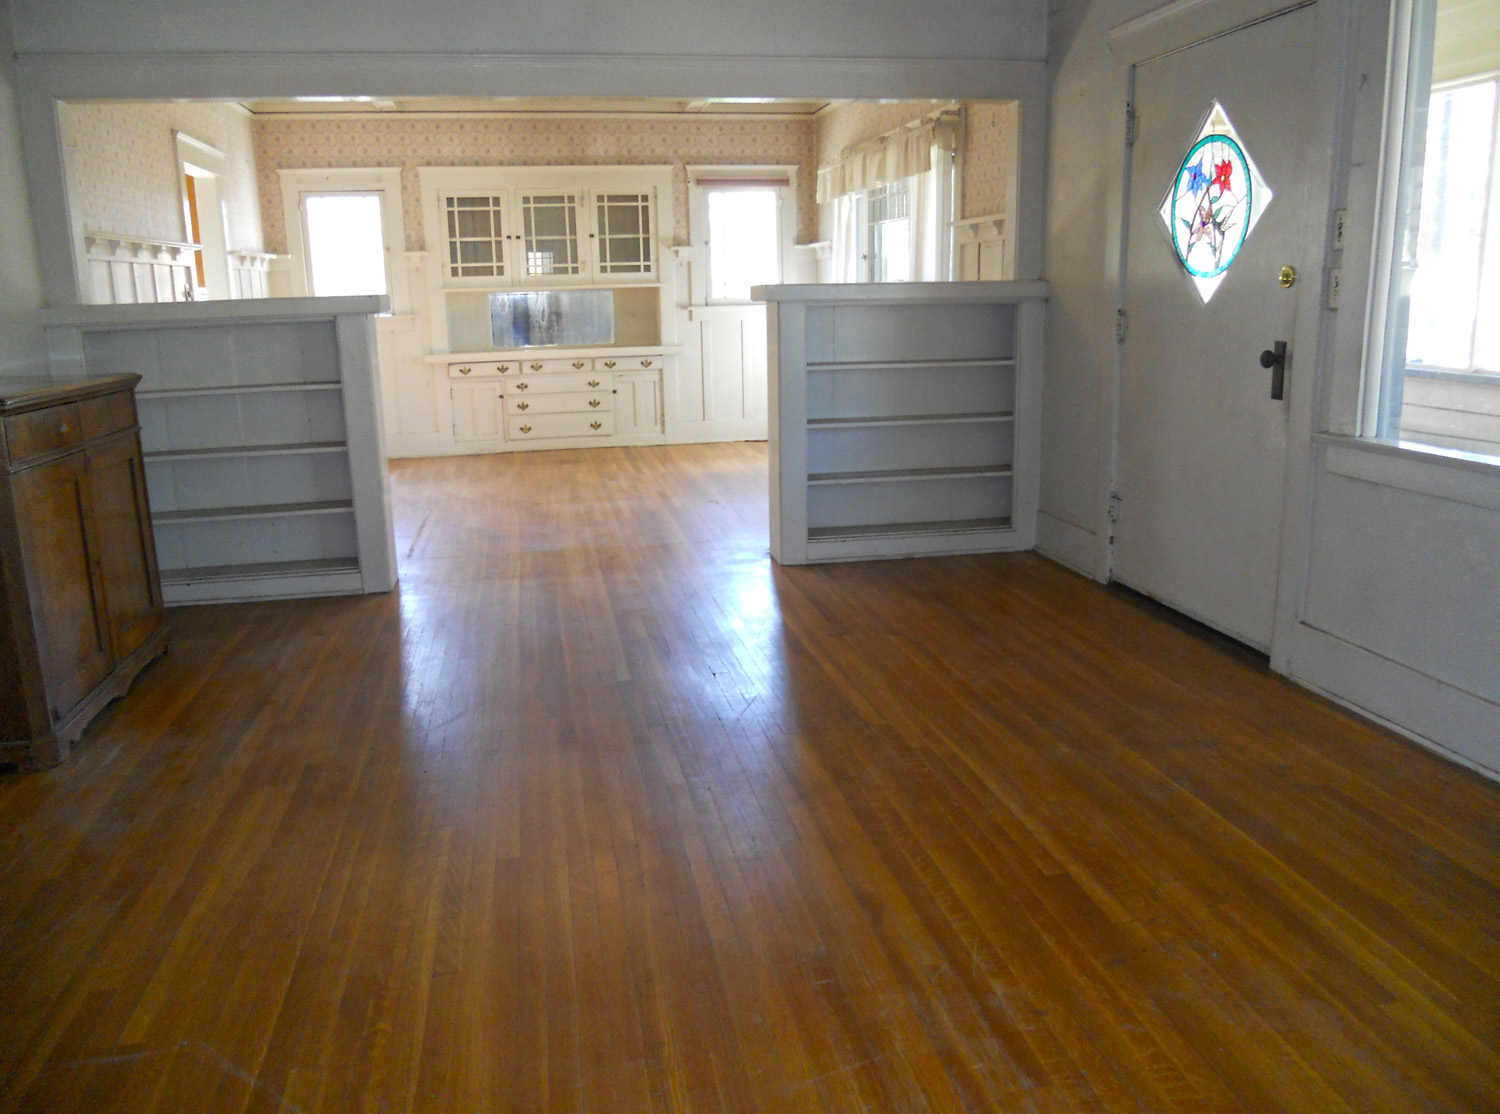 View from living room into the formal dining room, with the front door to the right.